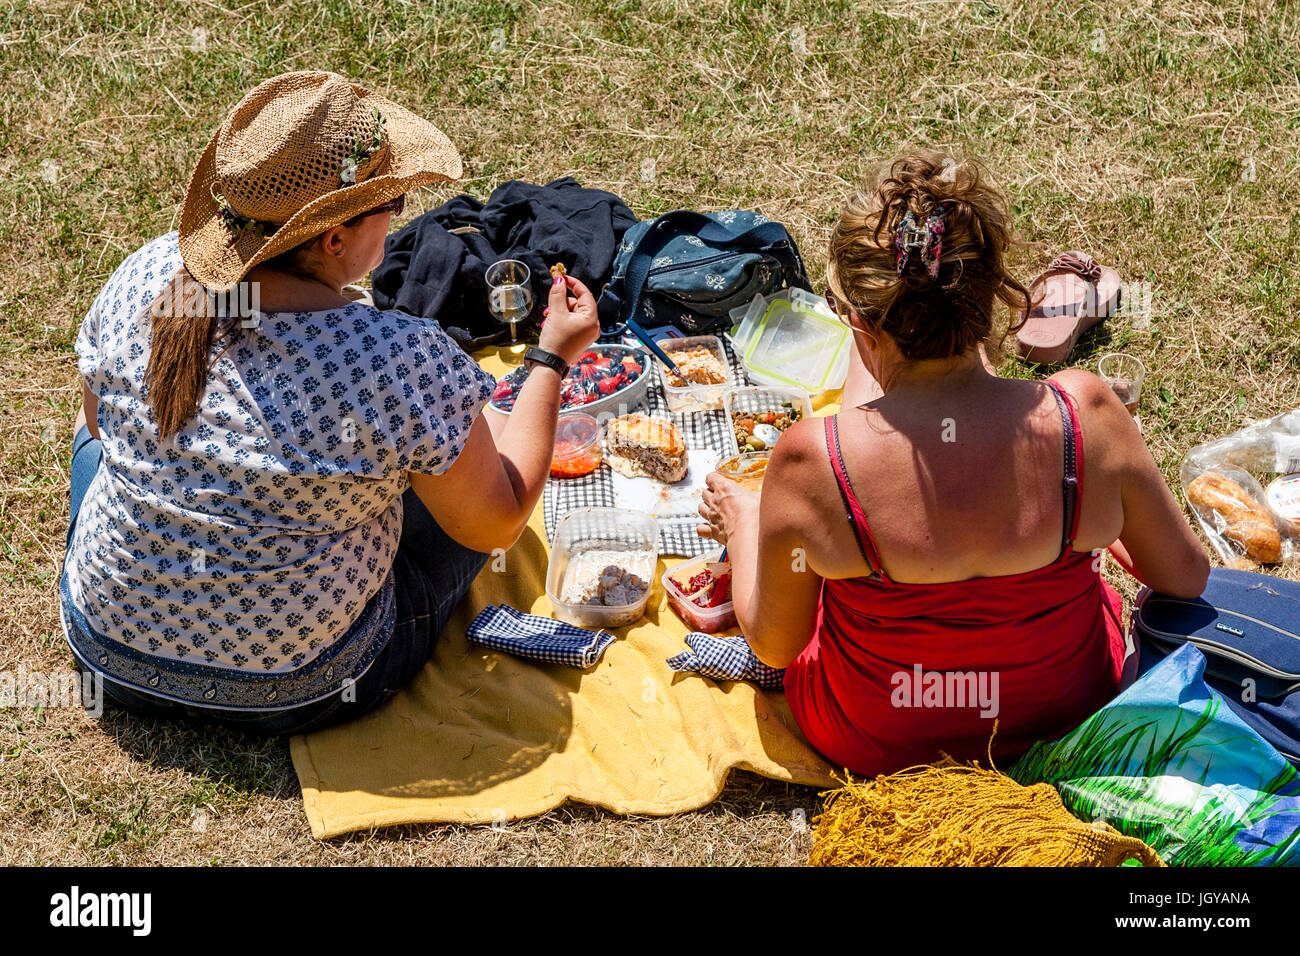 Two Women Sitting On The Banks Of The River Ouse Enjoying A Picnic, Lewes, Sussex, UK - Stock Image